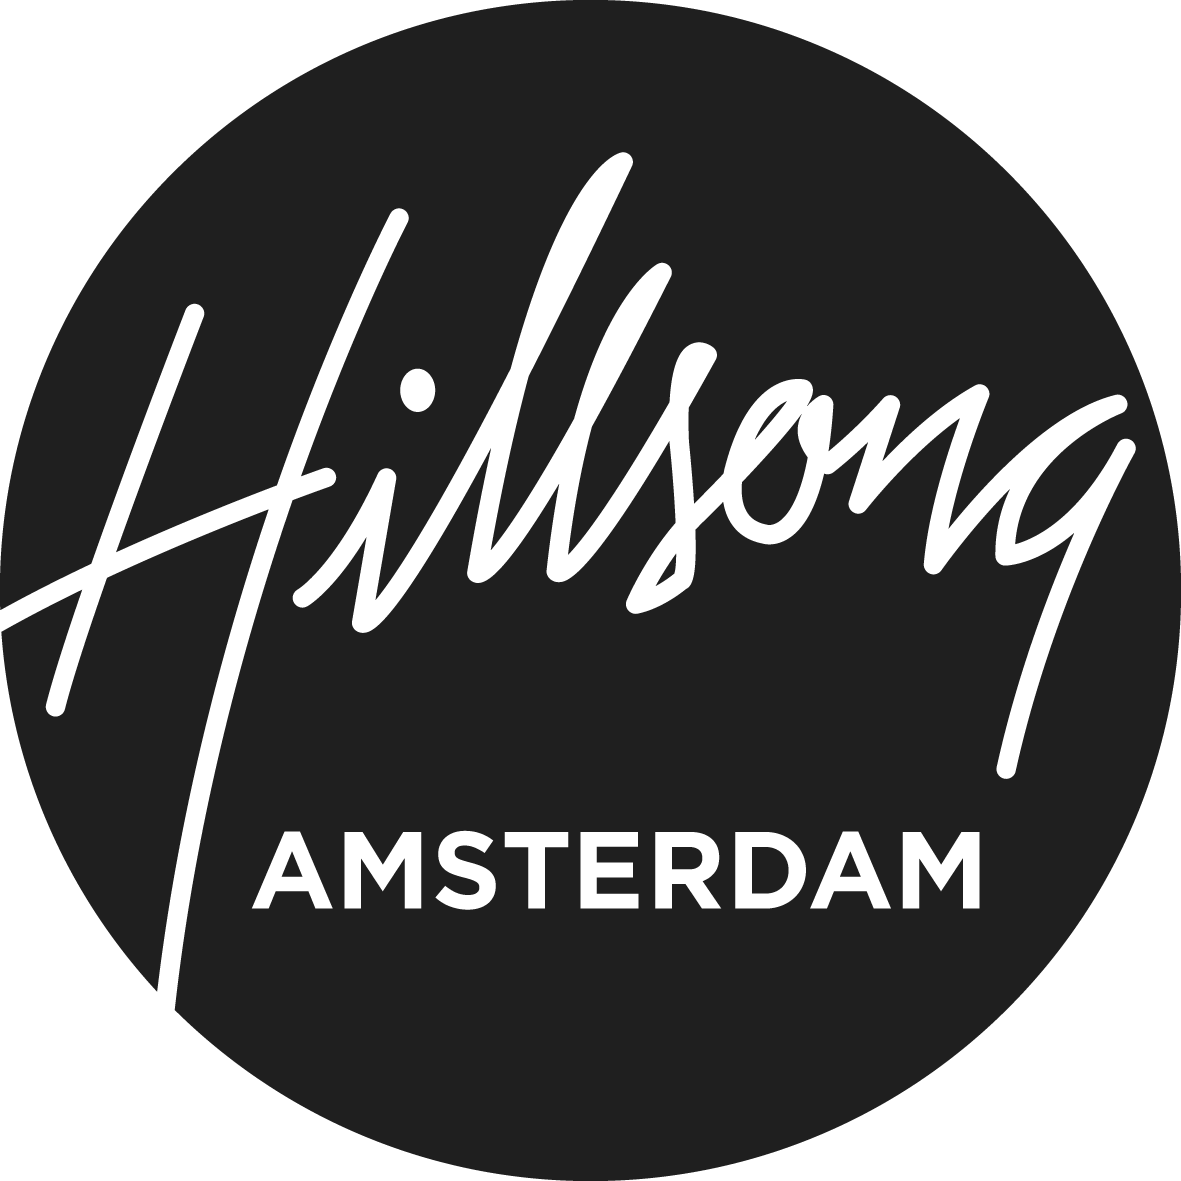 logo-hillsong-church-amsterdam